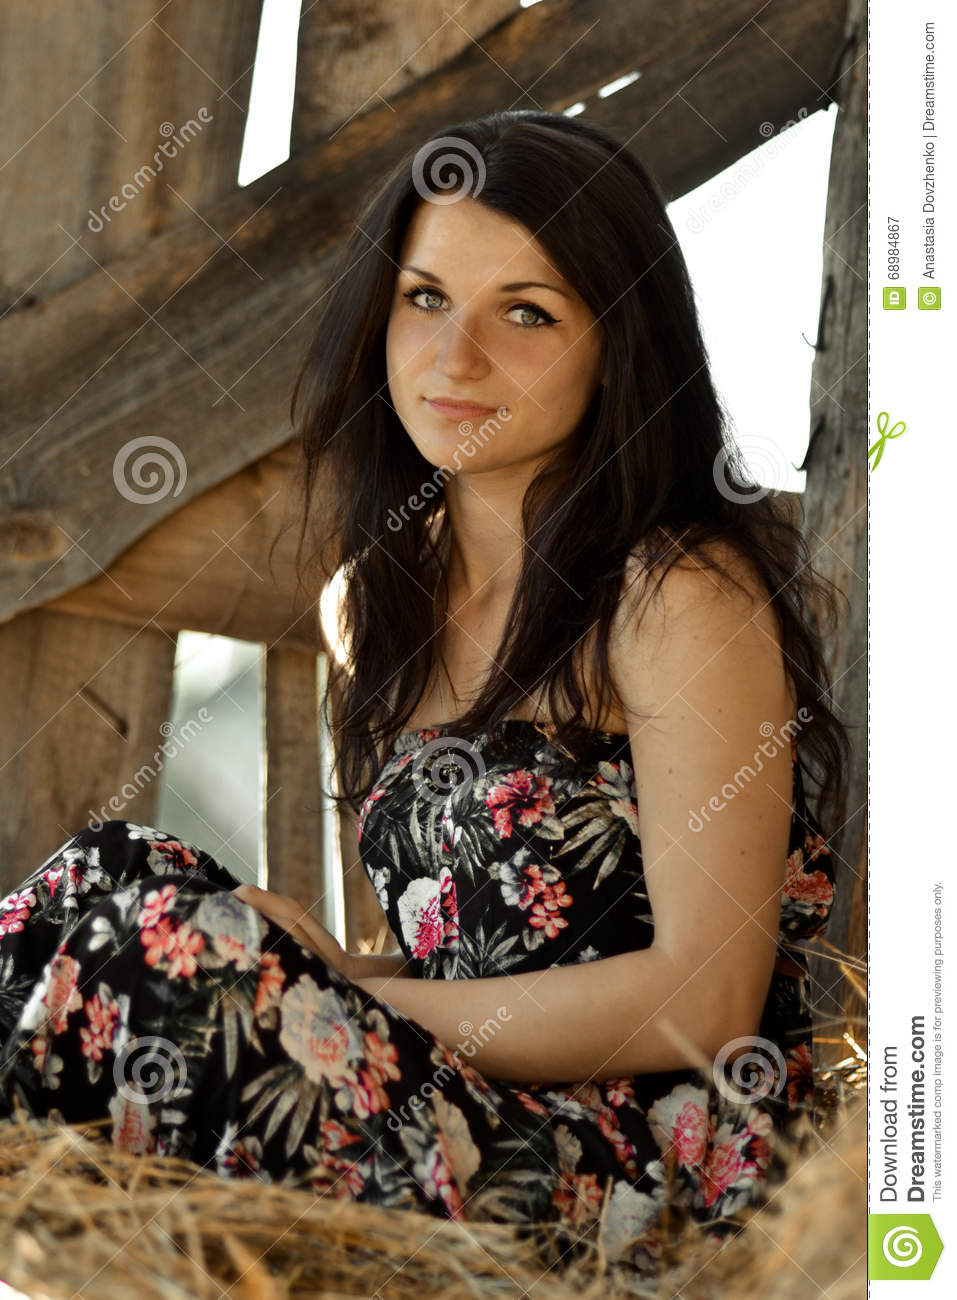 Very nice girl picture